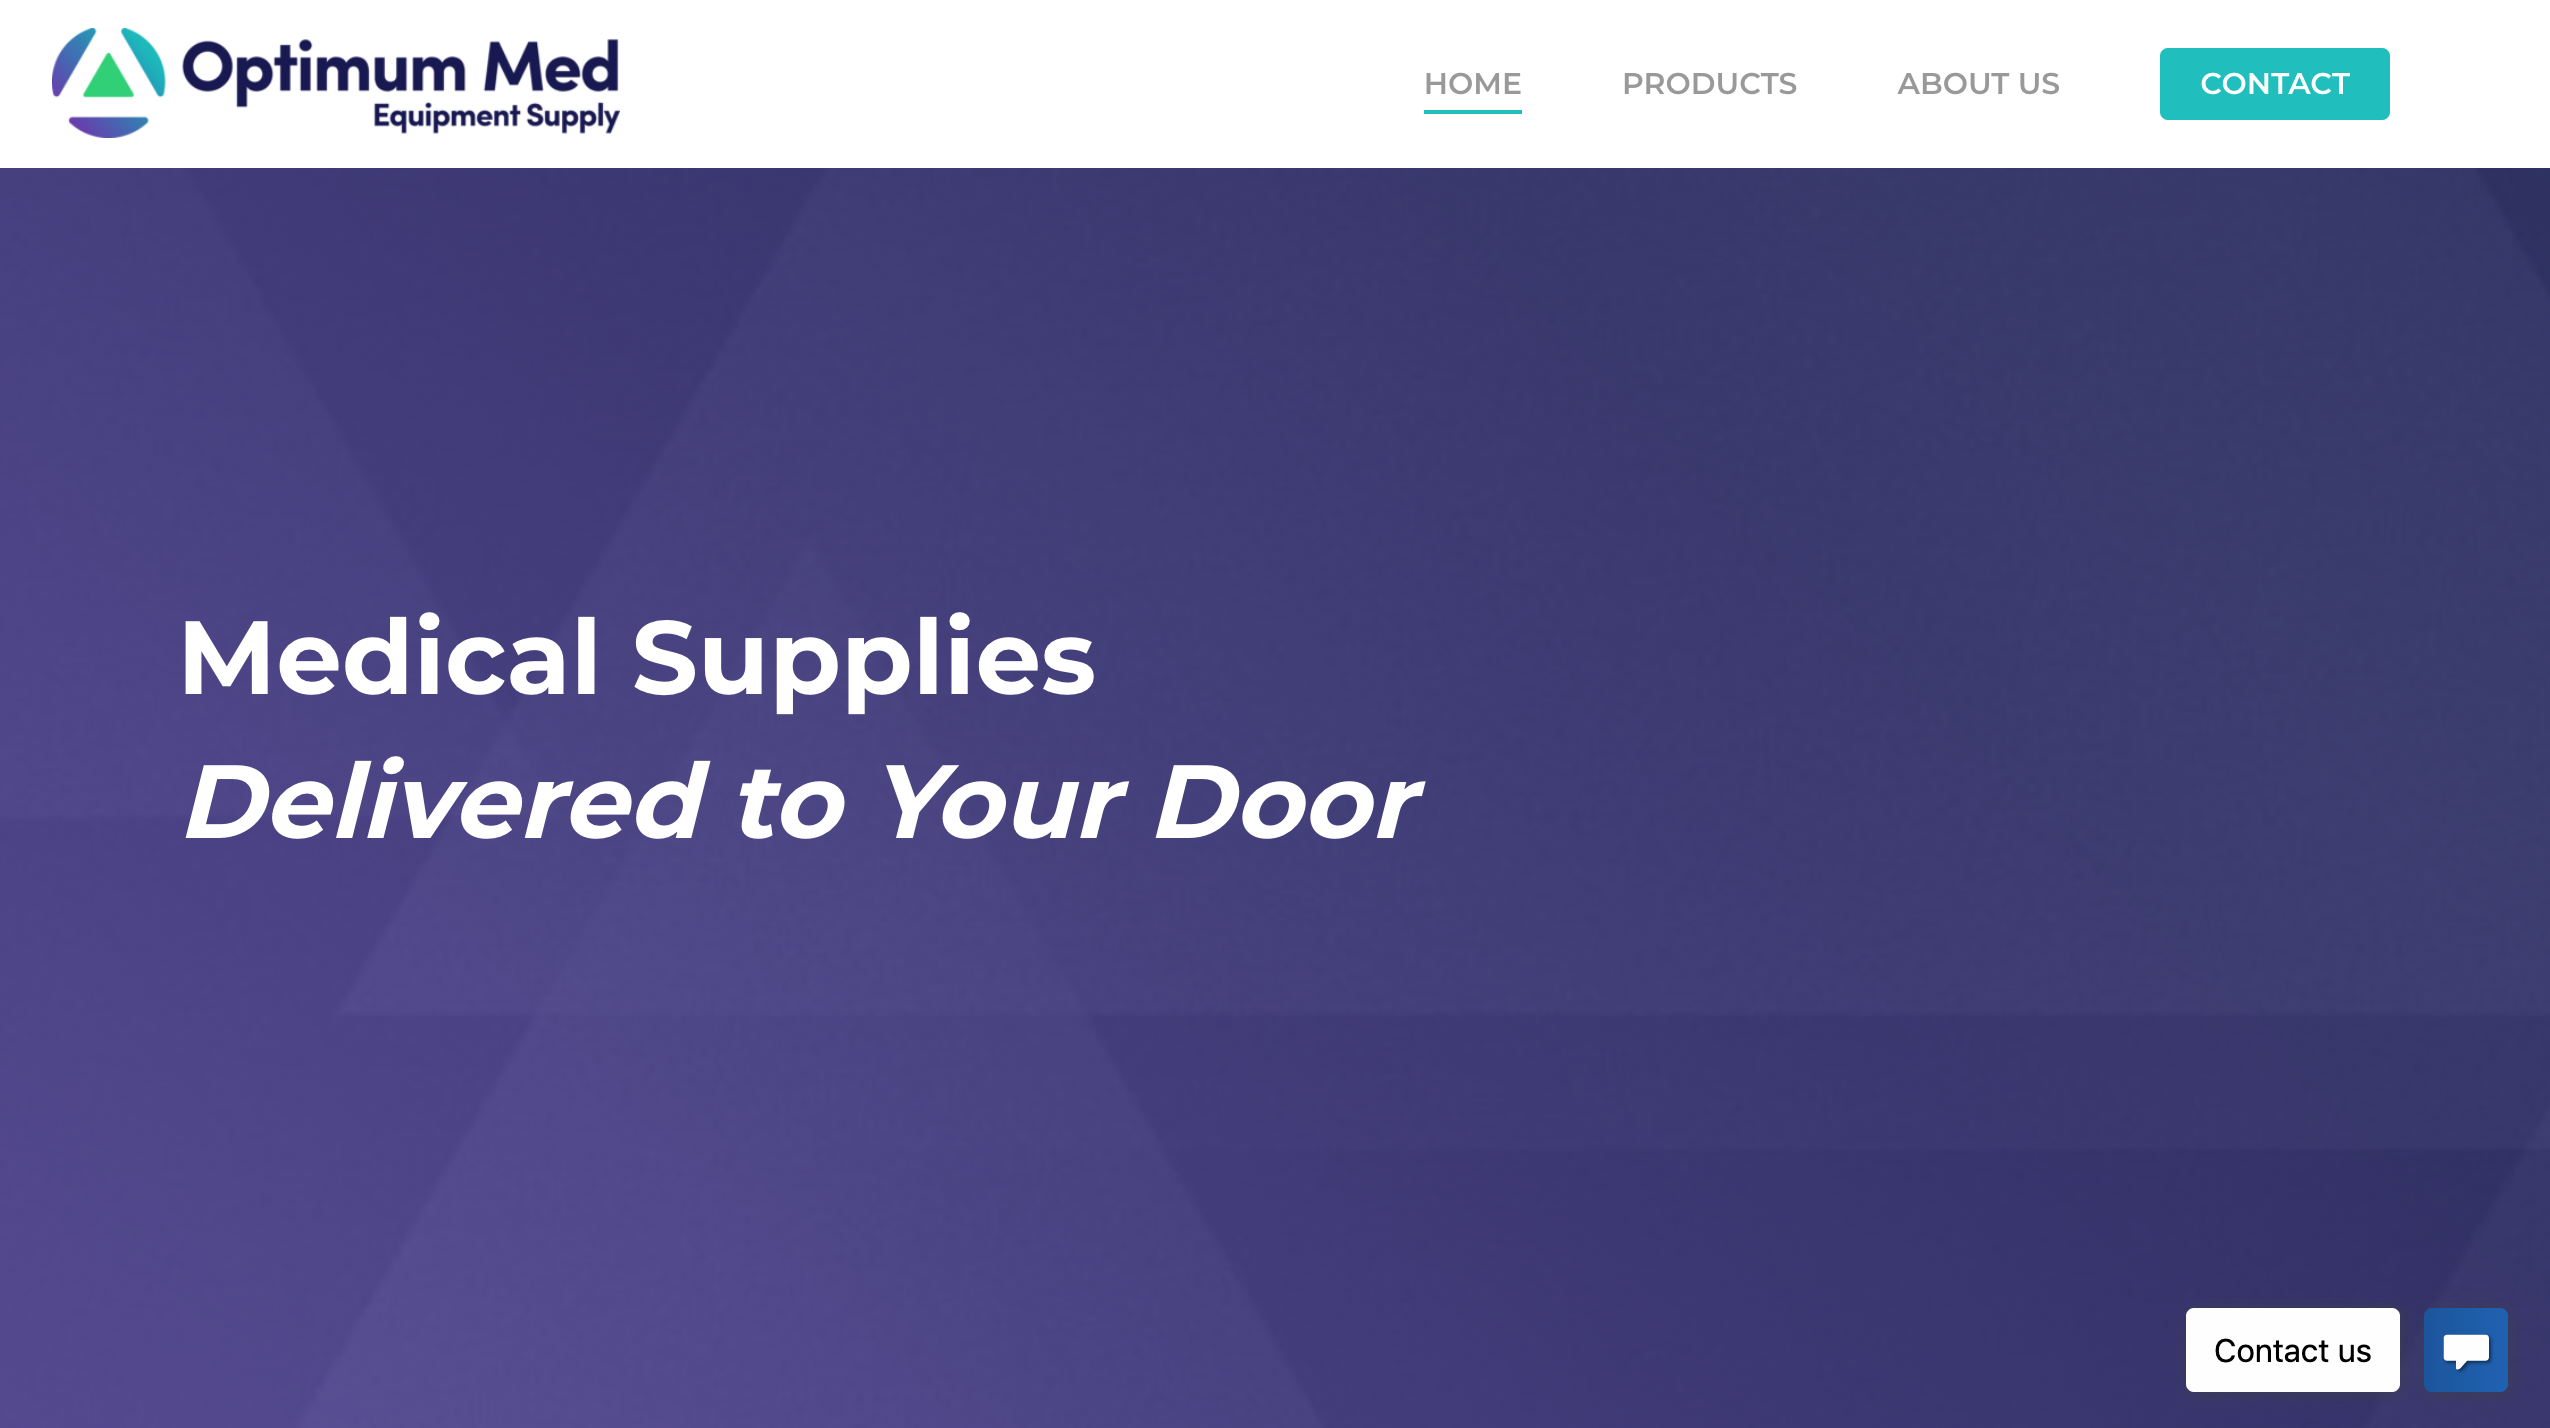 Optimum Med Equipment Supply website screenshot